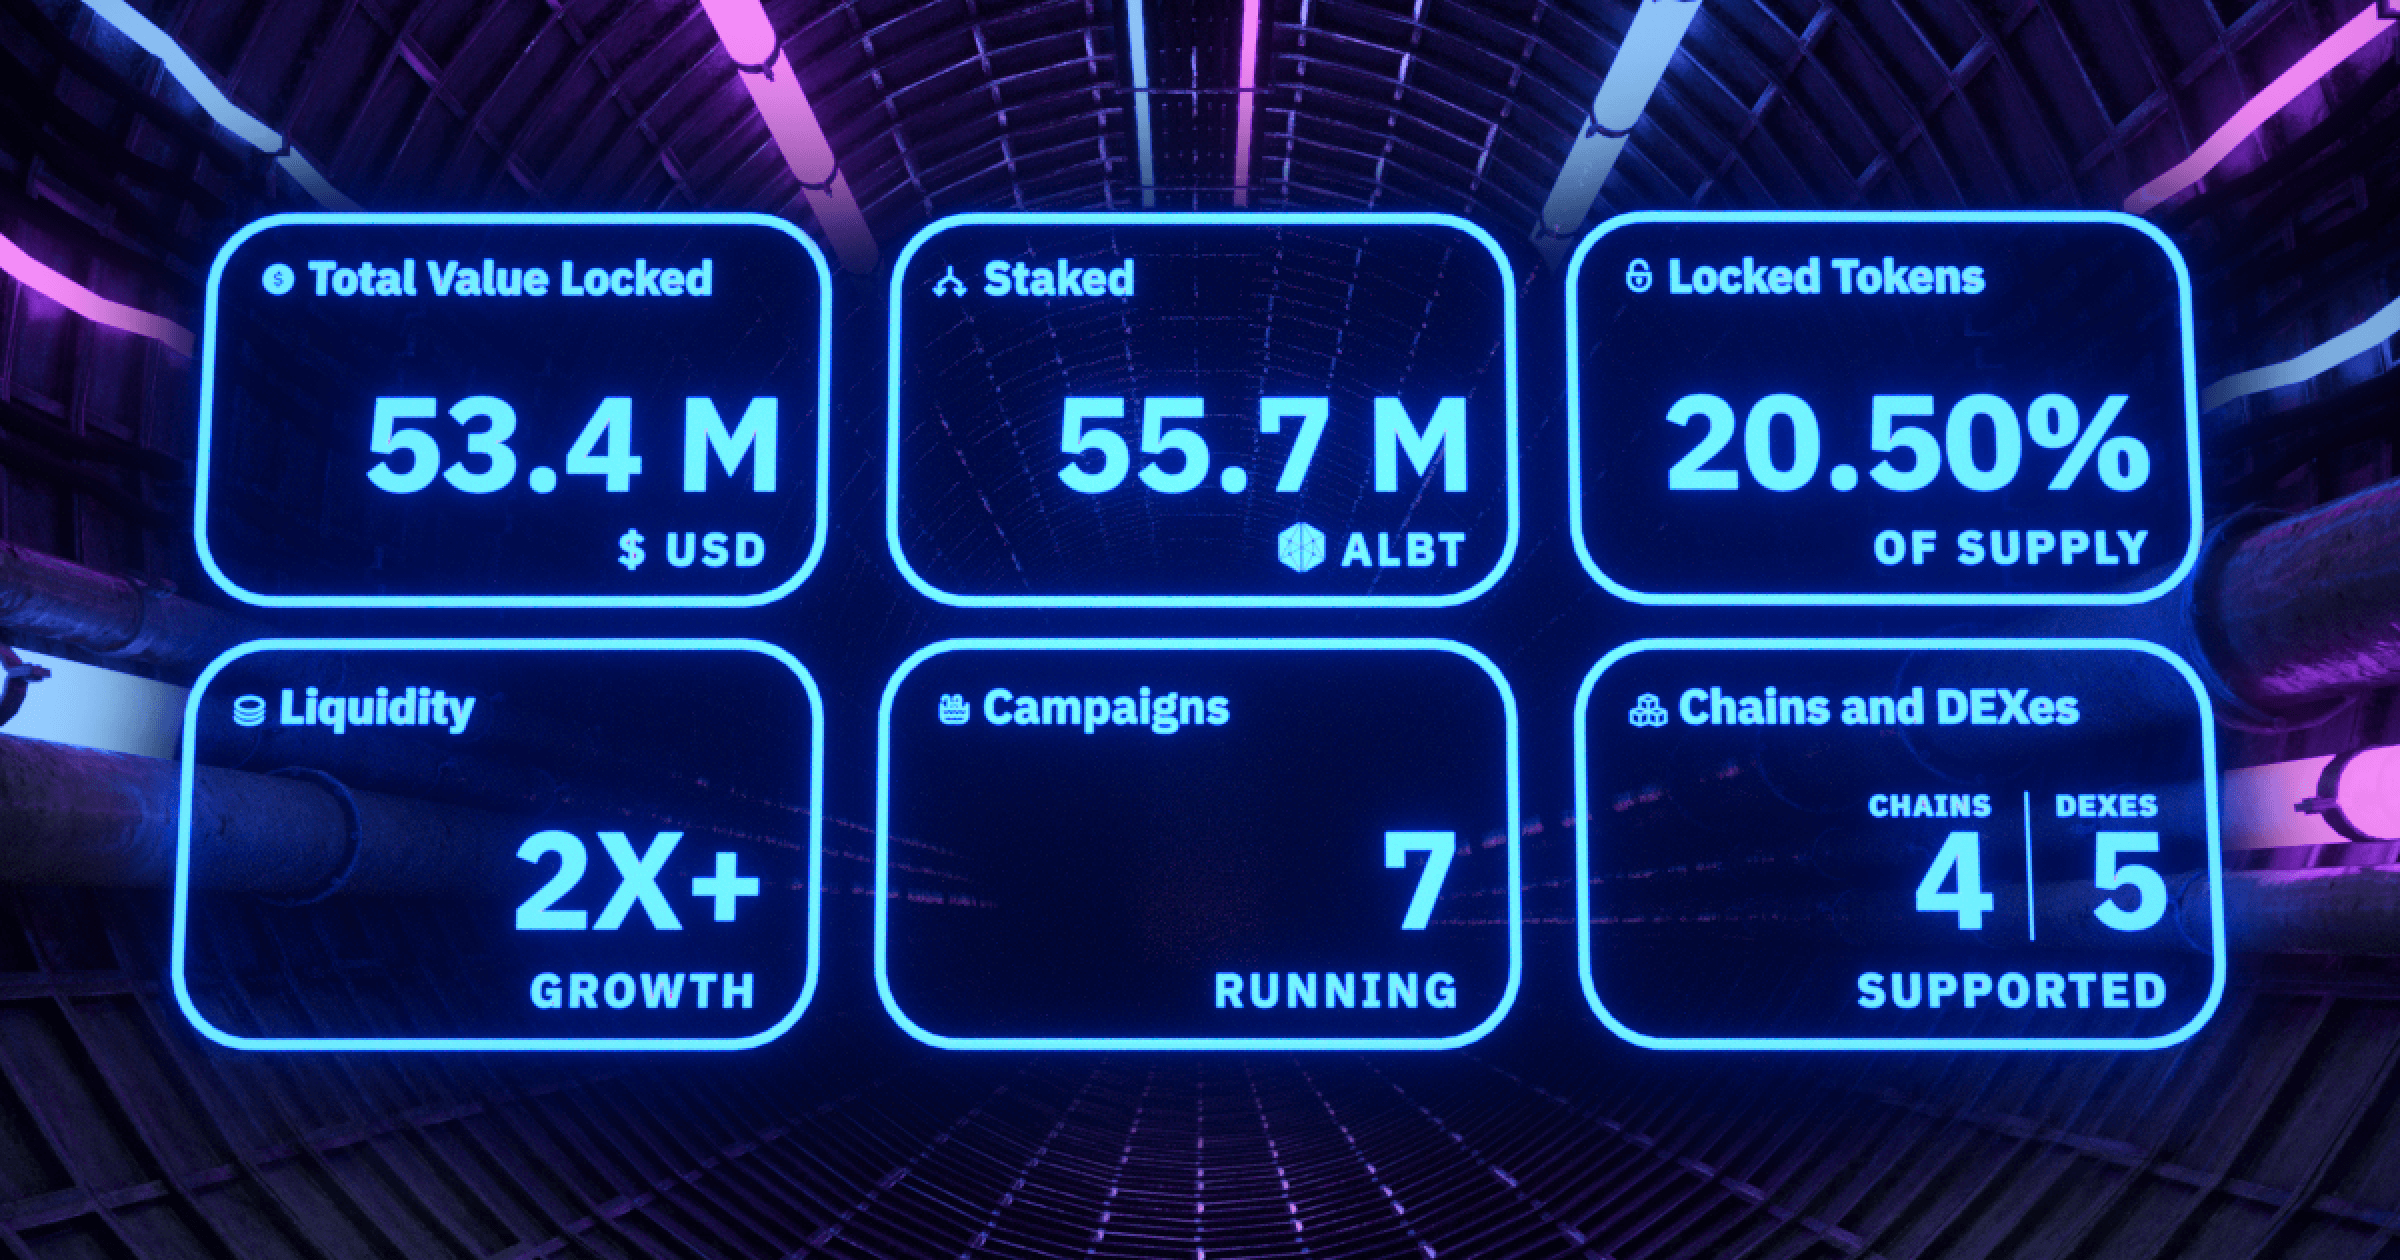 Key statistics for AllianceBlock's own liquidity mining and staking campaigns